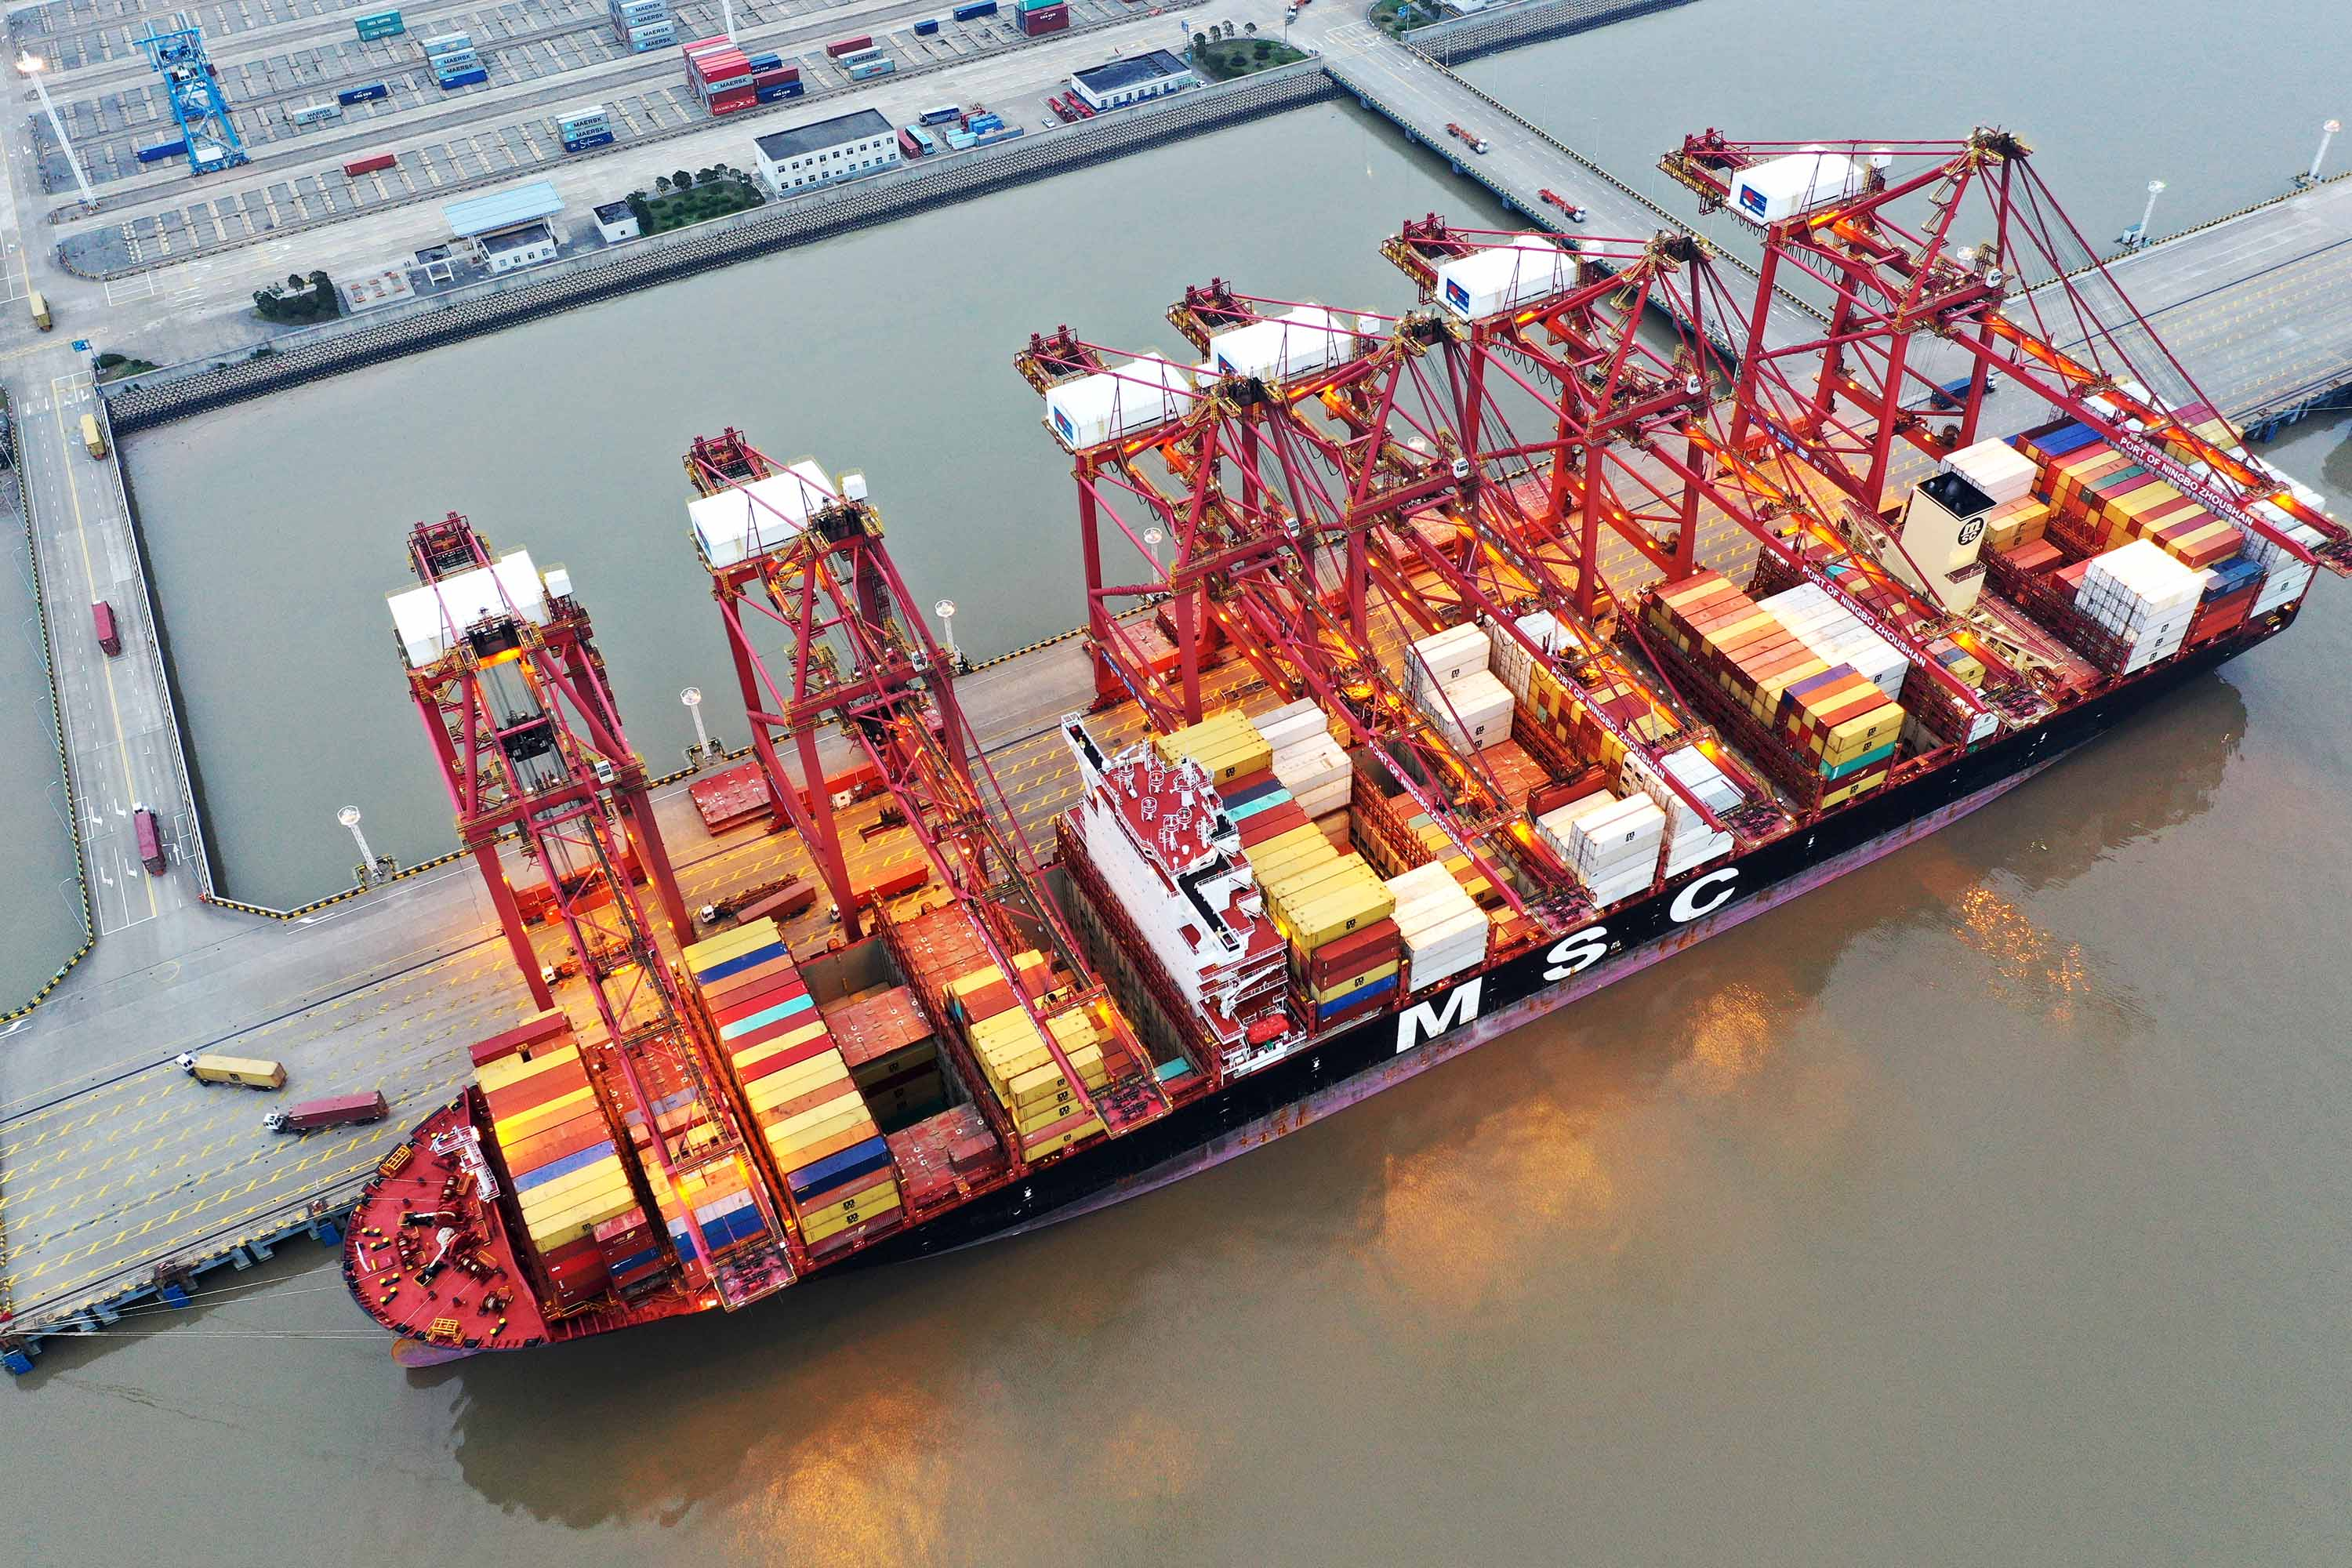 Containers sit stacked on a cargo ship berthed at Zhoushan Port in China, on February 4.